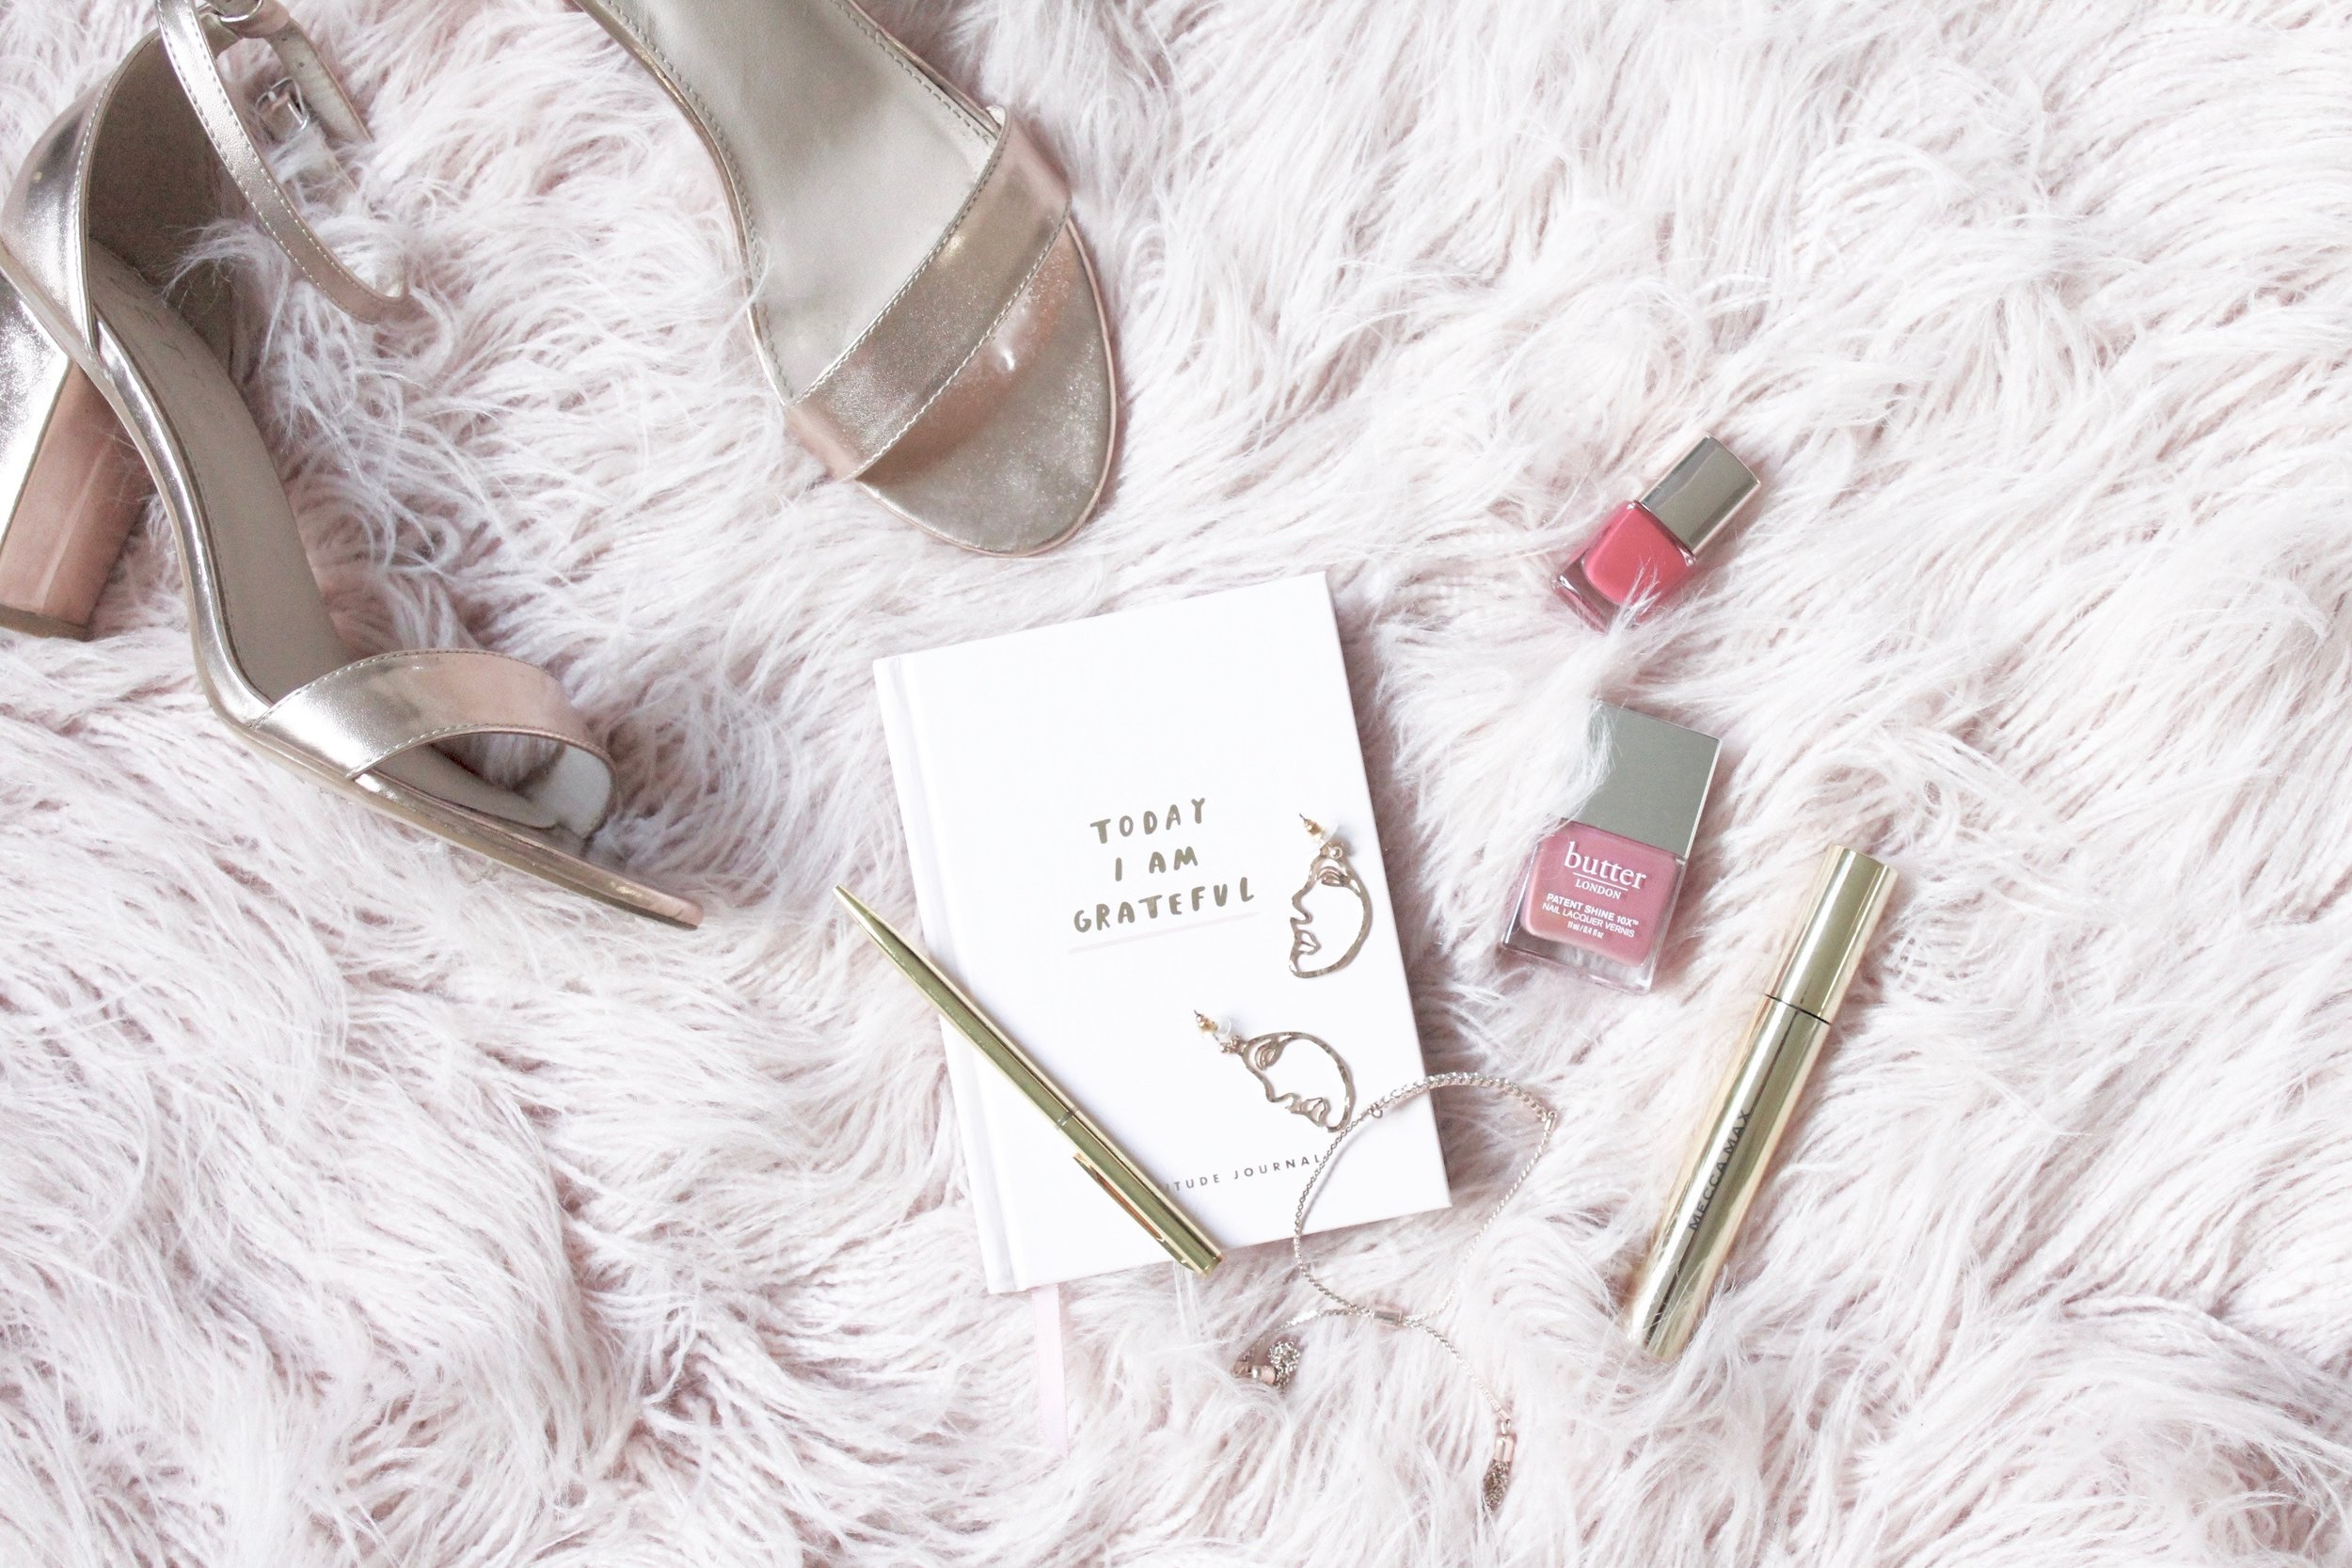 Here are five ways I have found that keeping a gratitude journal can change your life. Read more from Holl & Lane at hollandlanemag.com